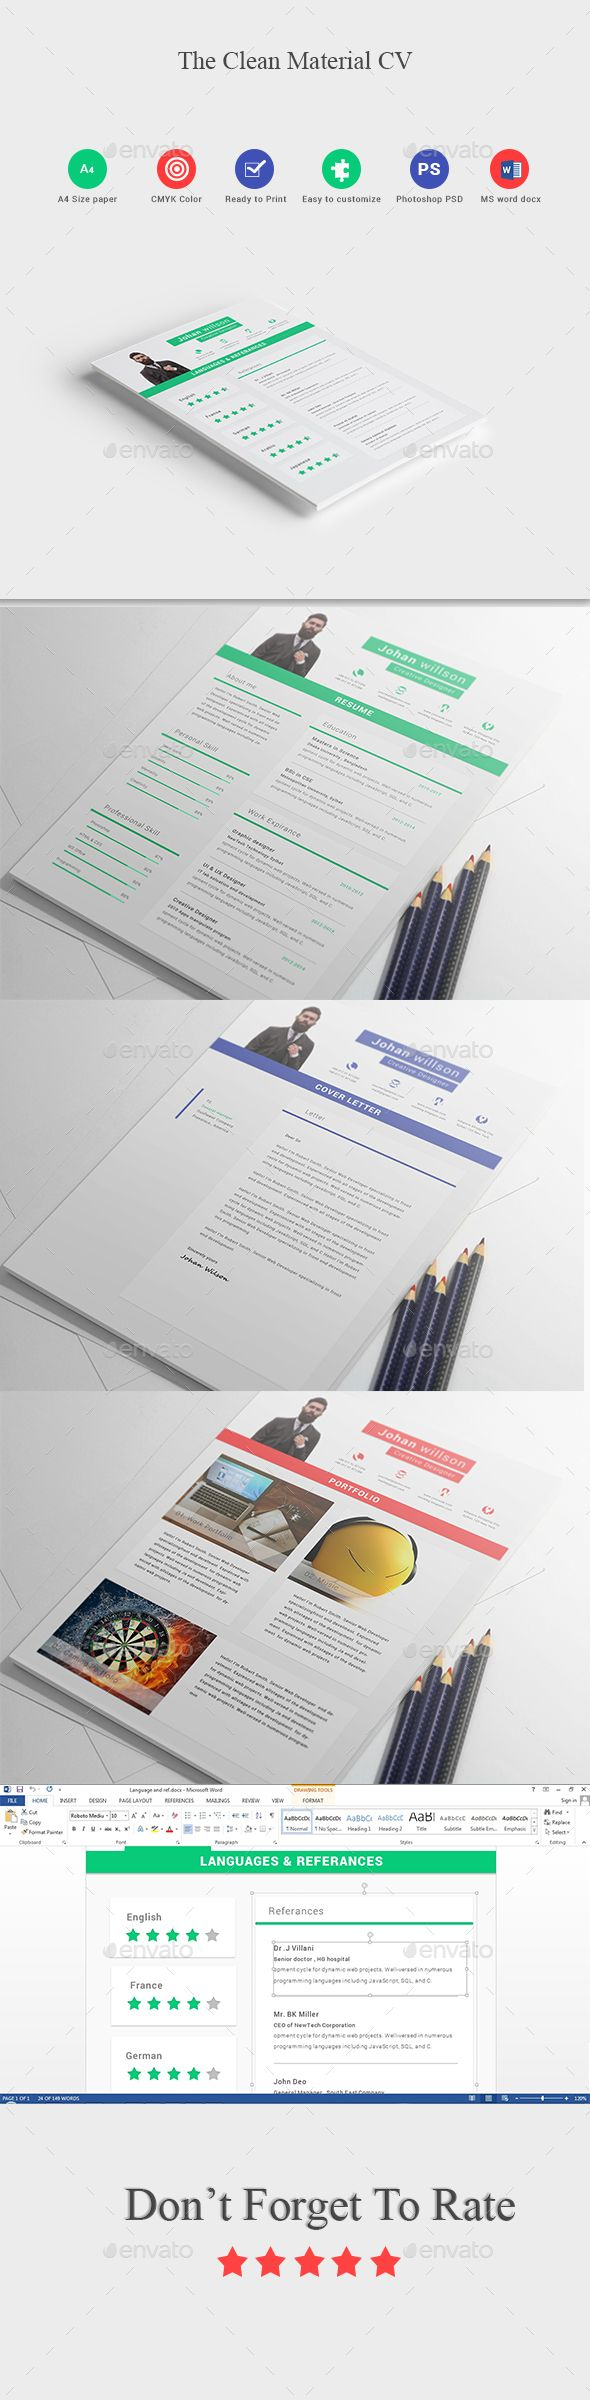 The Clean Material Cv Pinterest Cleaning Materials Word Design